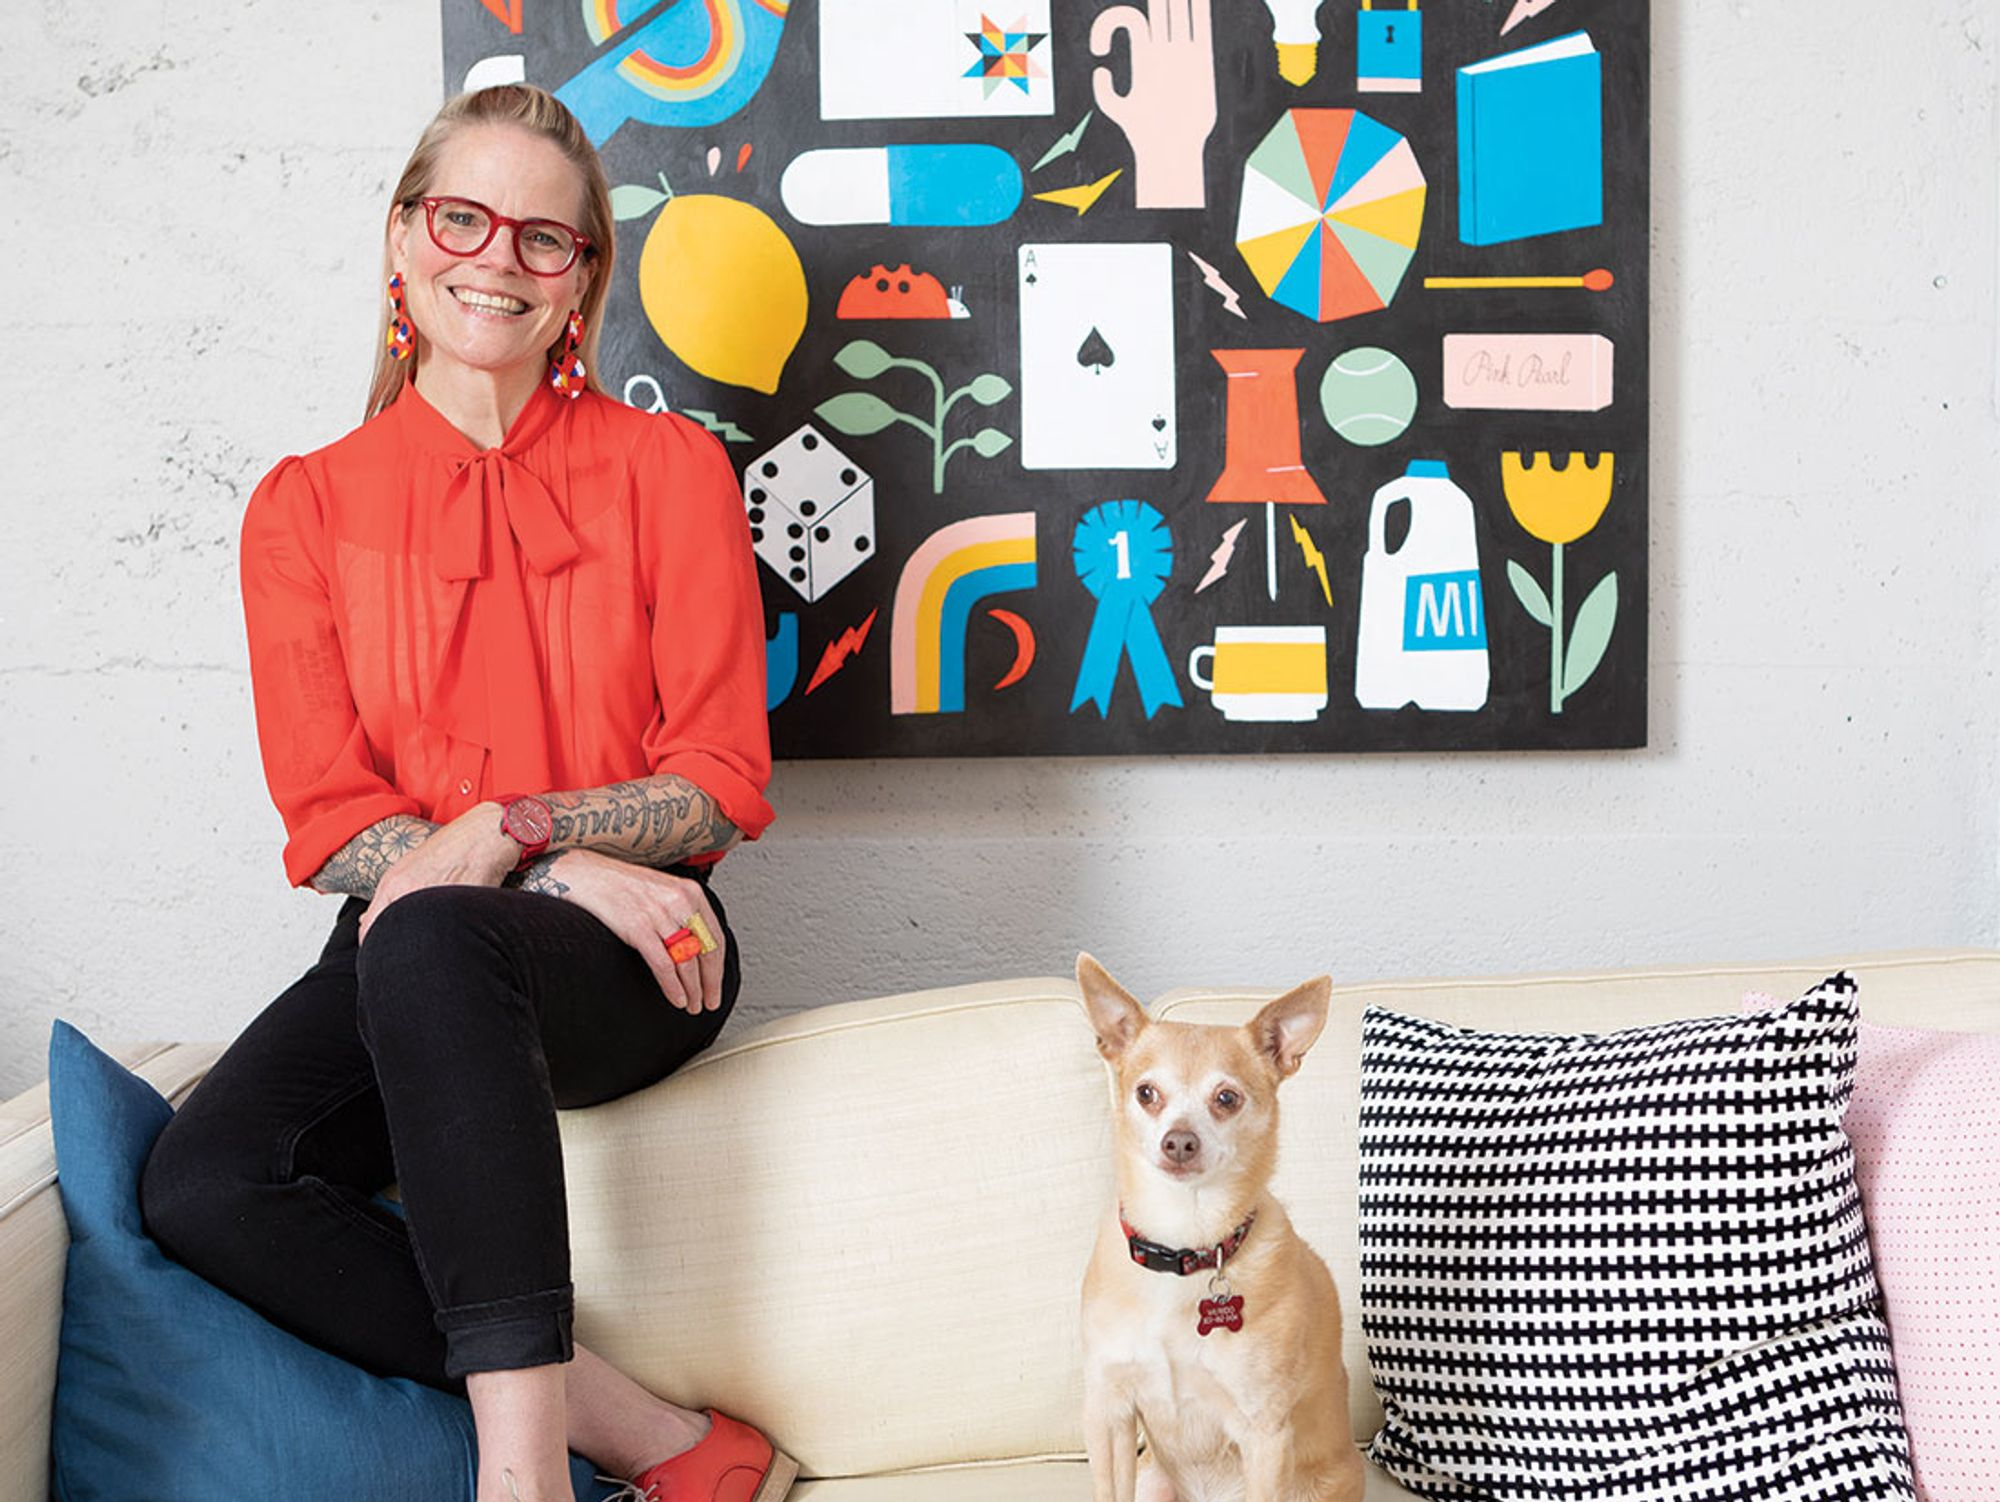 Lisa Congdon On Creativity, Activism, and Finding Your Flow